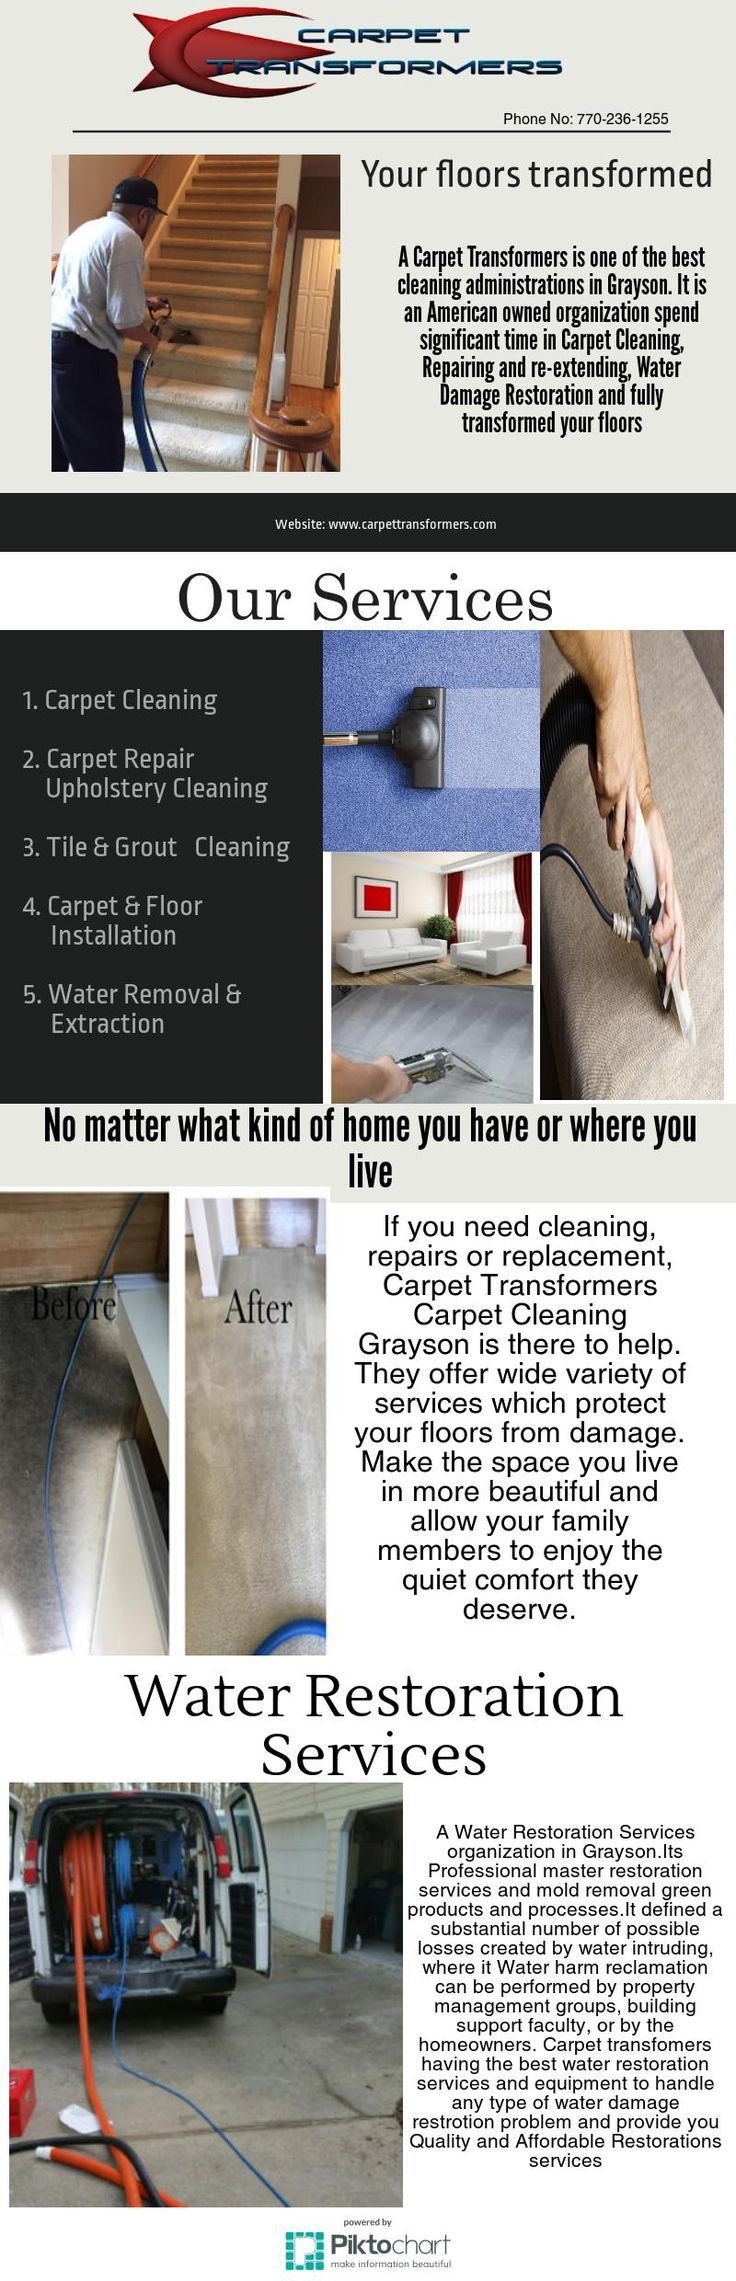 Are you dealing with water damage, immediate action is crucial.Carpet transformers having the best water restoration services and equipment to handle any type of water damage Restoration problem and provide you Quality and Affordable Restorations services call now Now phone number 770-236-1255.